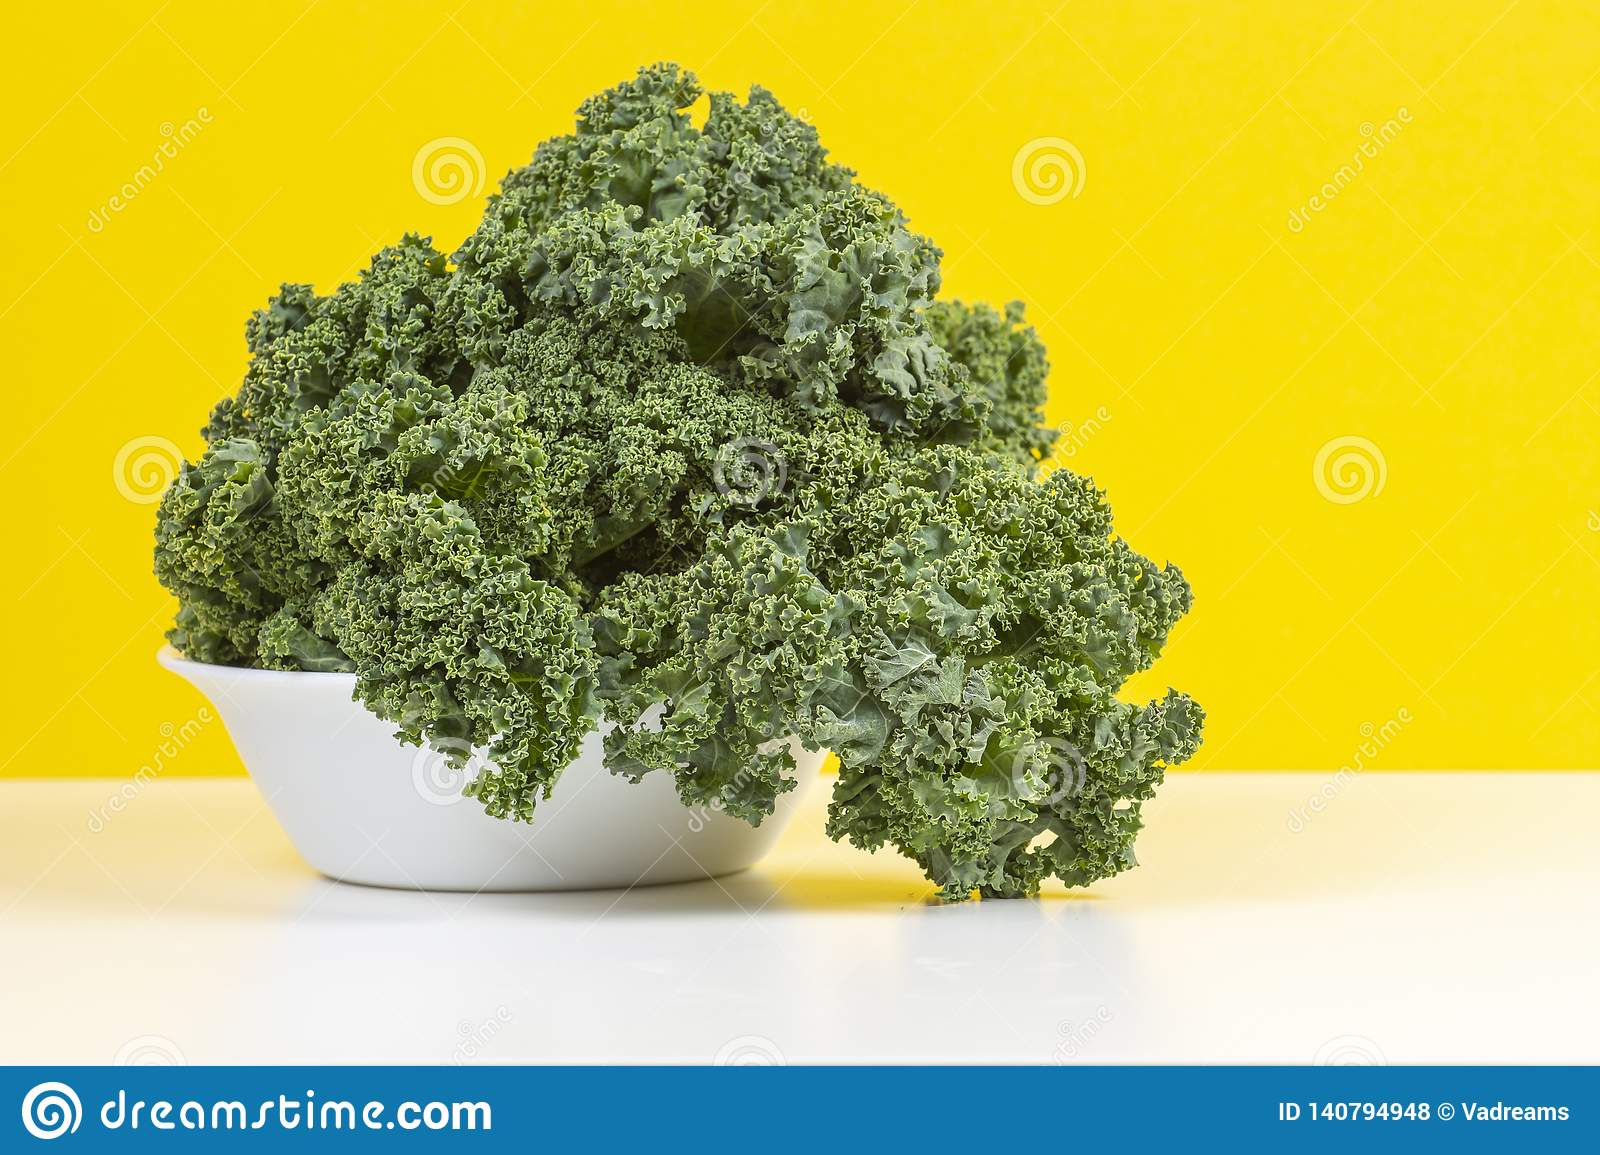 Fresh raw organic green curly kale leaves of kale on white plate with yellow background